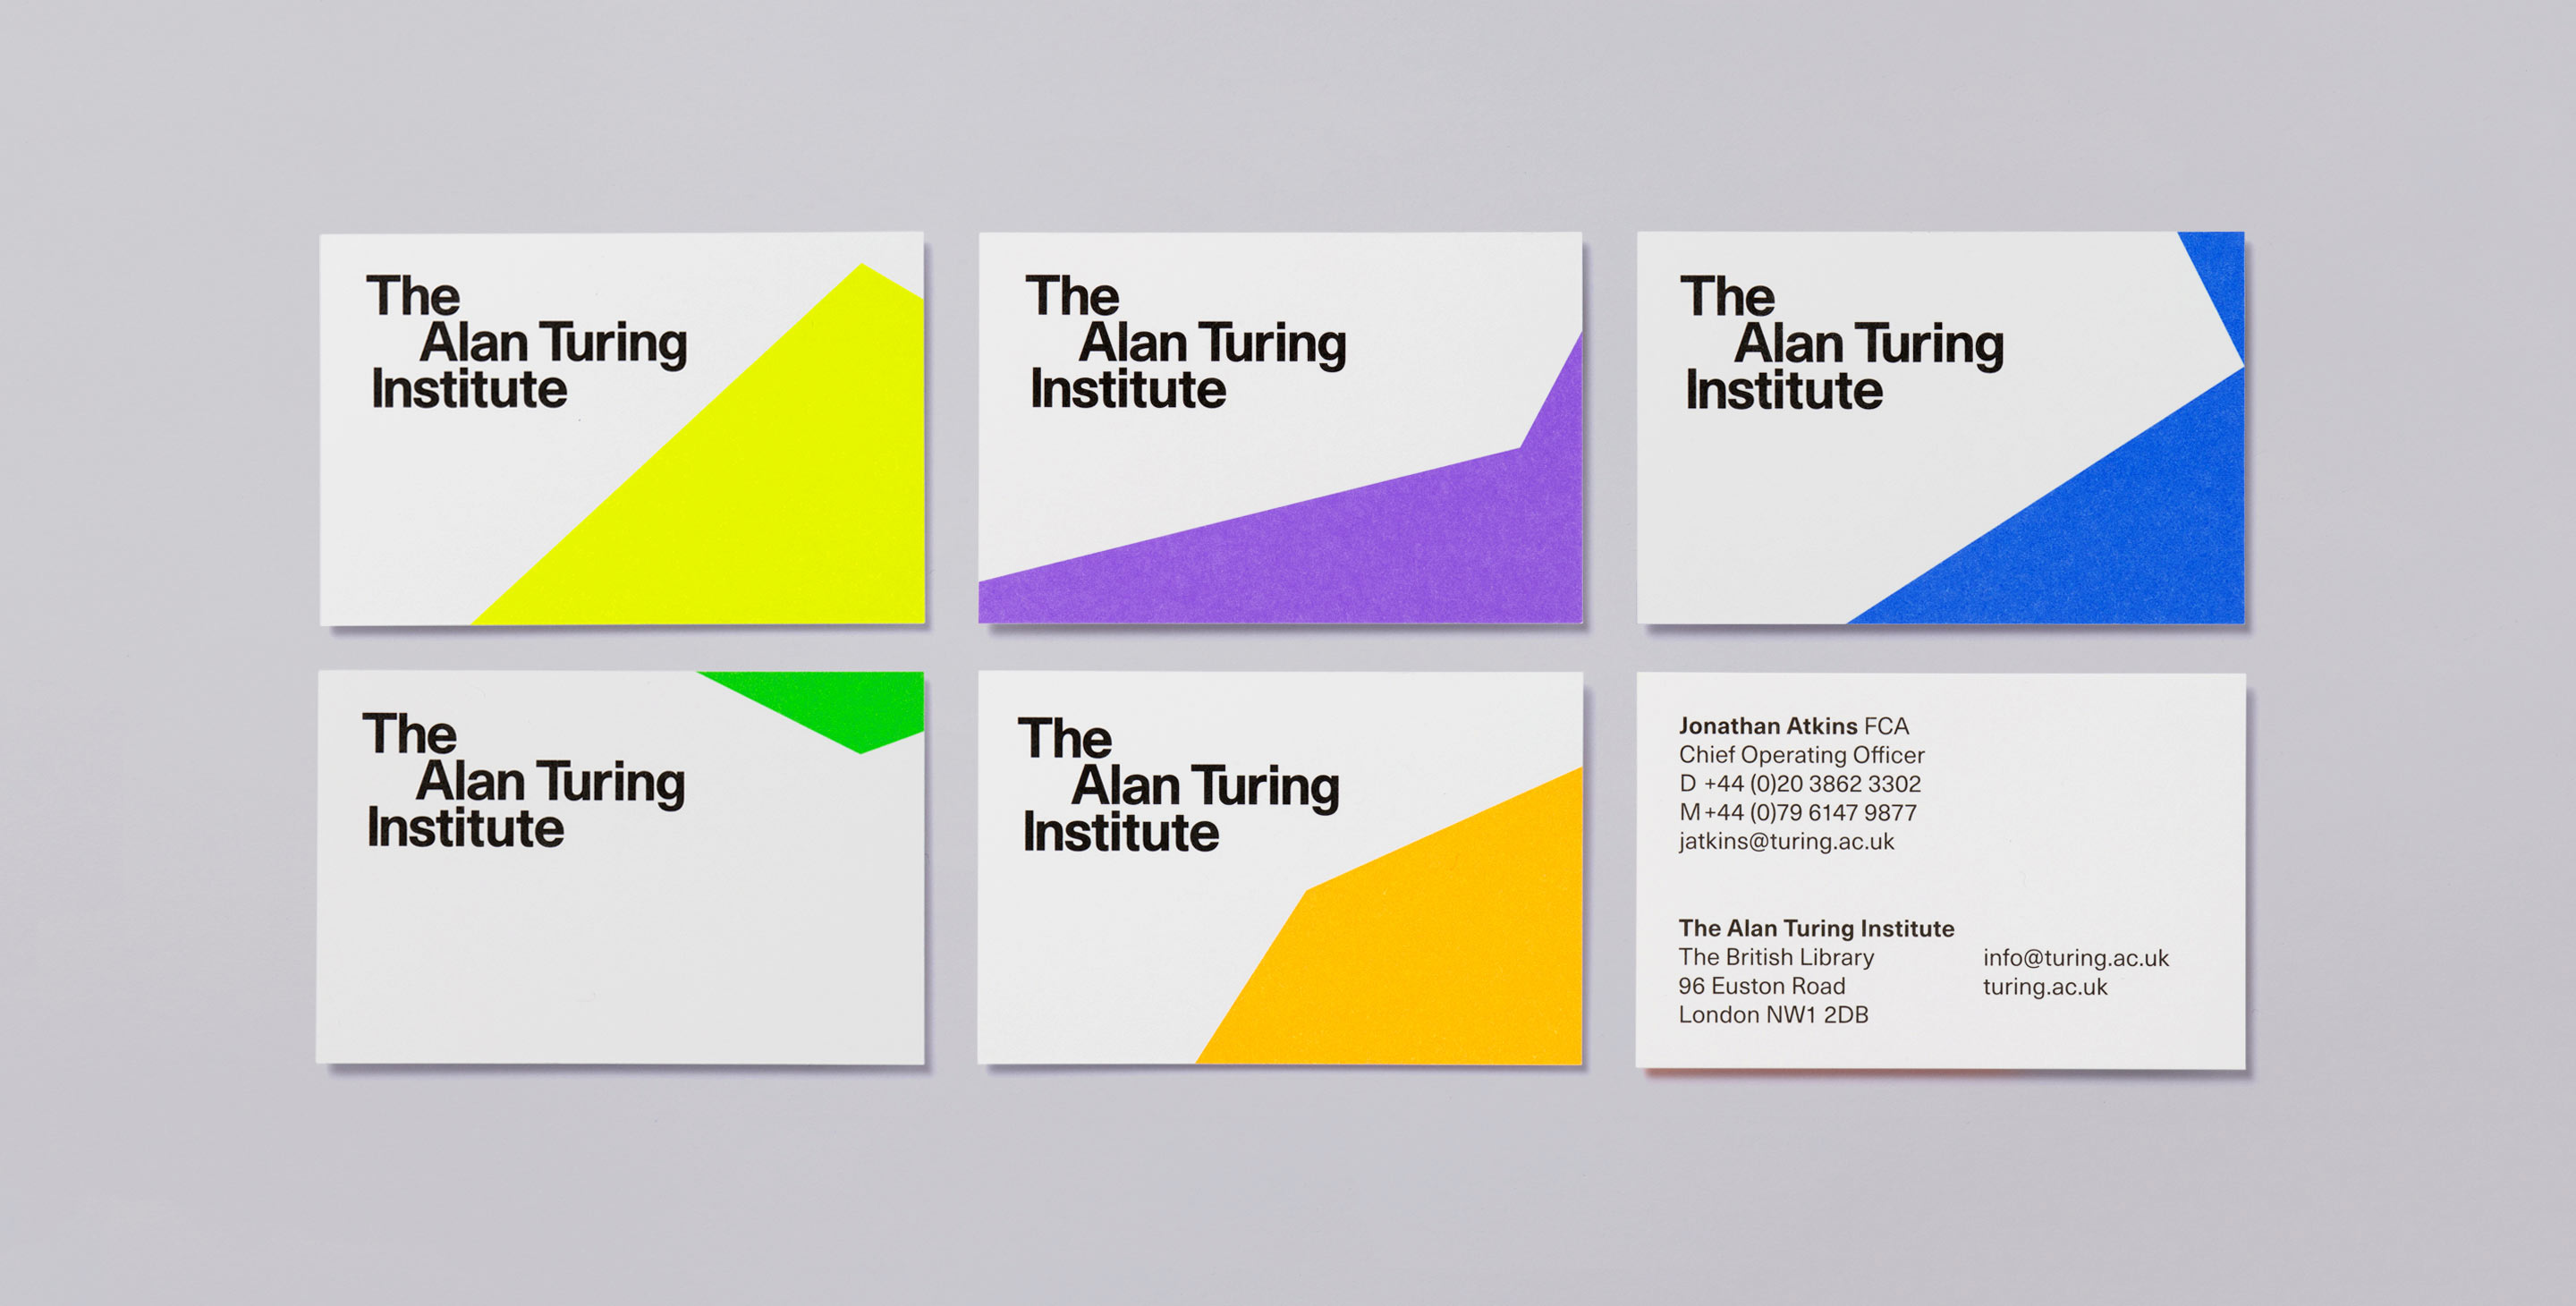 The Alan Turing Institute business cards